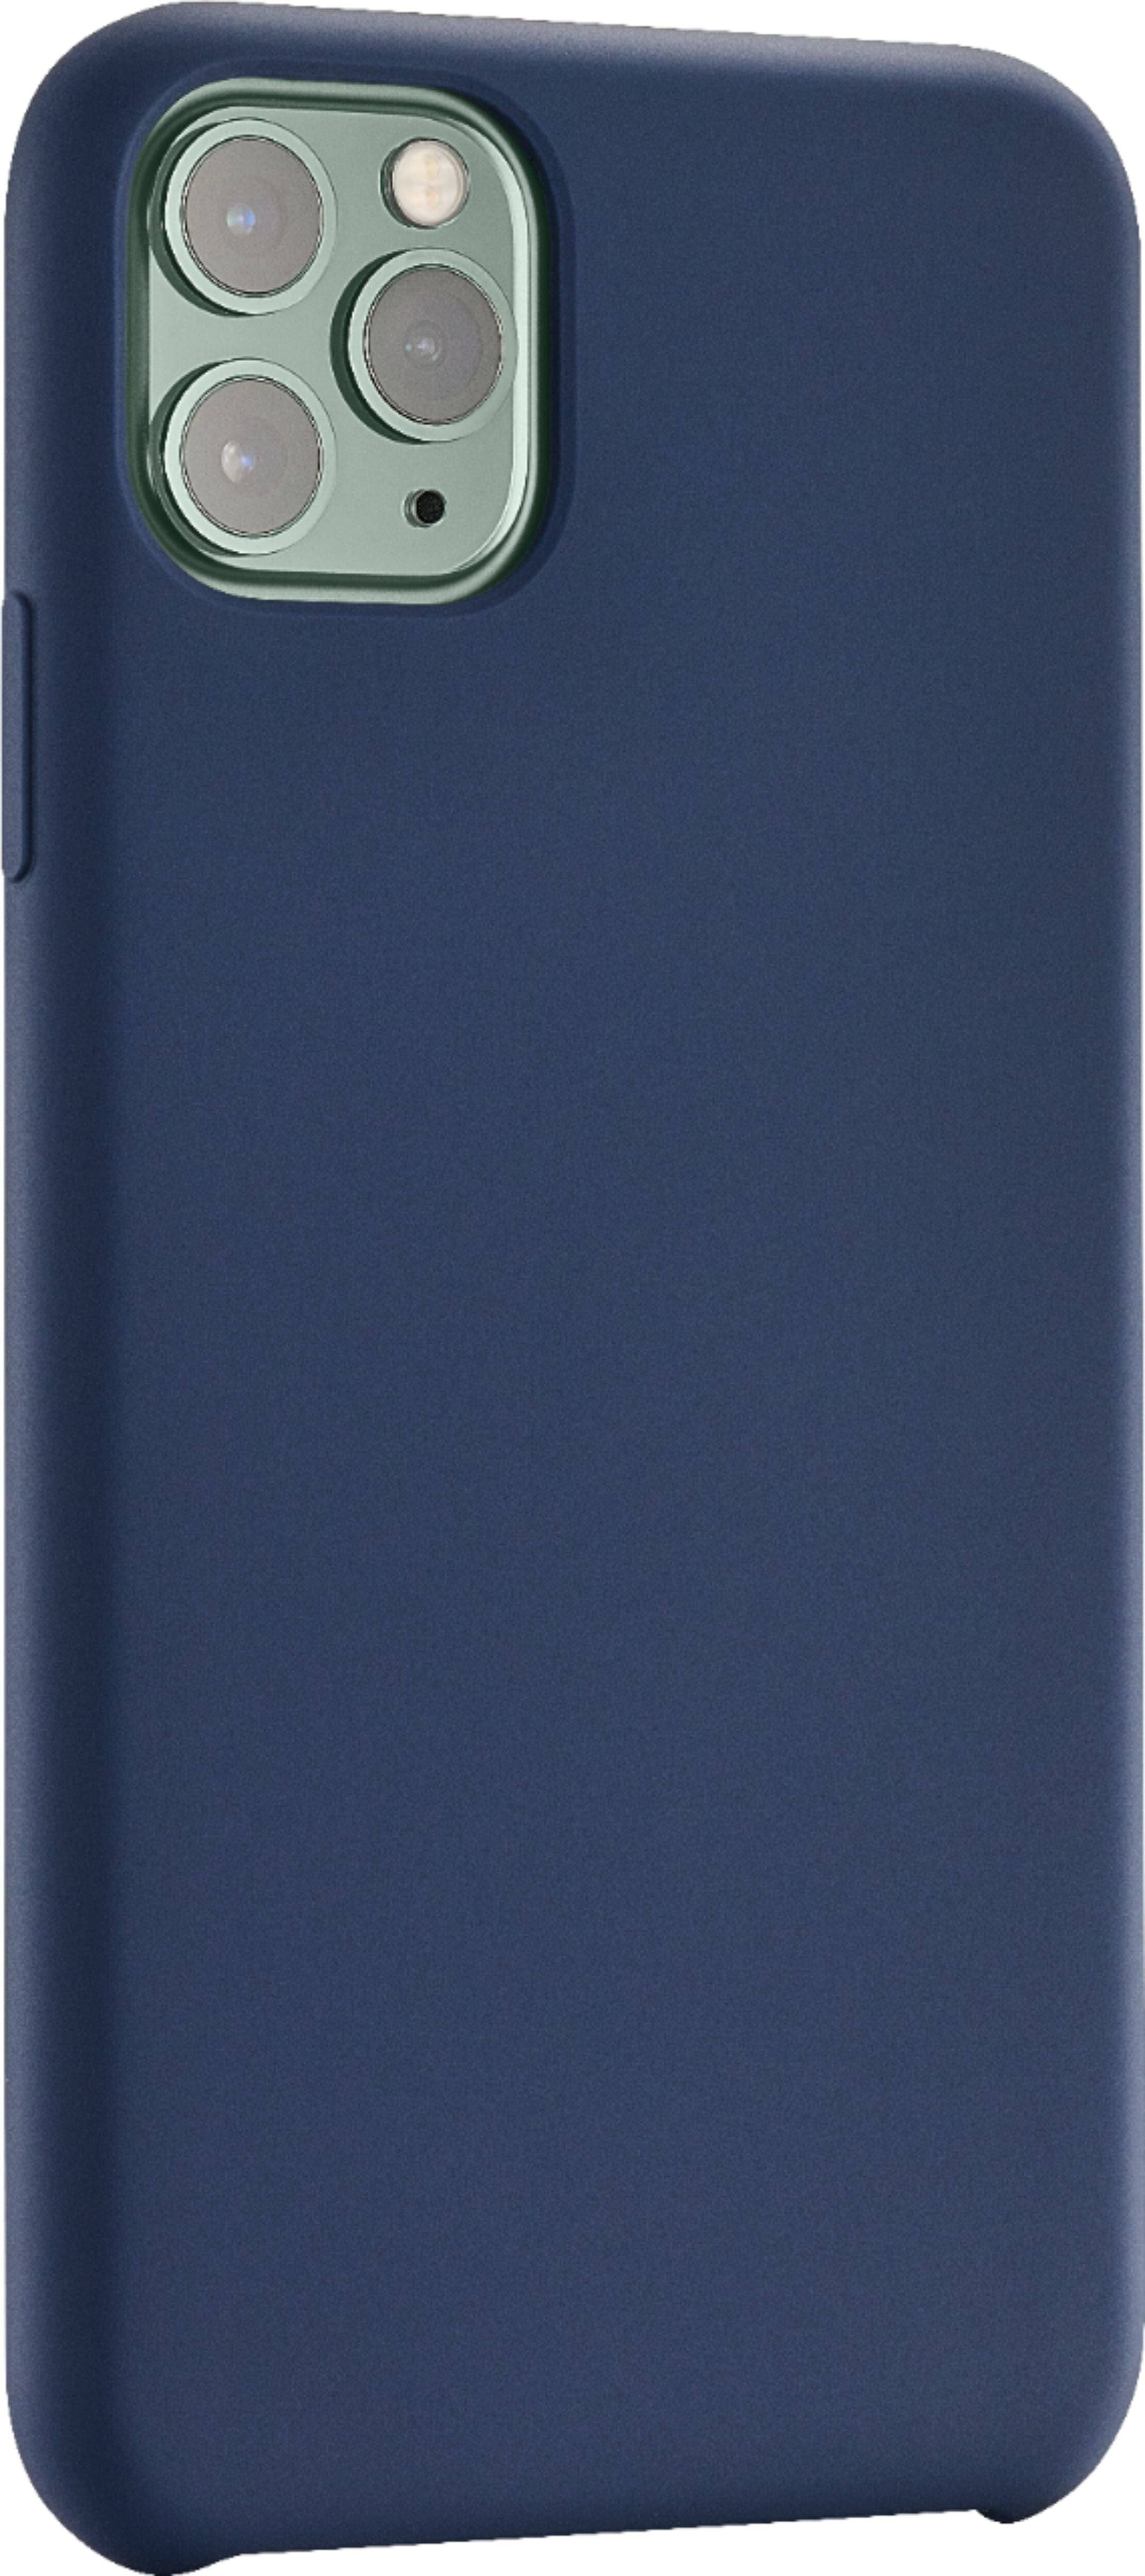 Insignia Silicone Hard Shell Case for Apple iPhone 11 Pro (Various) or 11 Pro Max (Midnight Navy or Aqua Blue) $3 + Free S/H